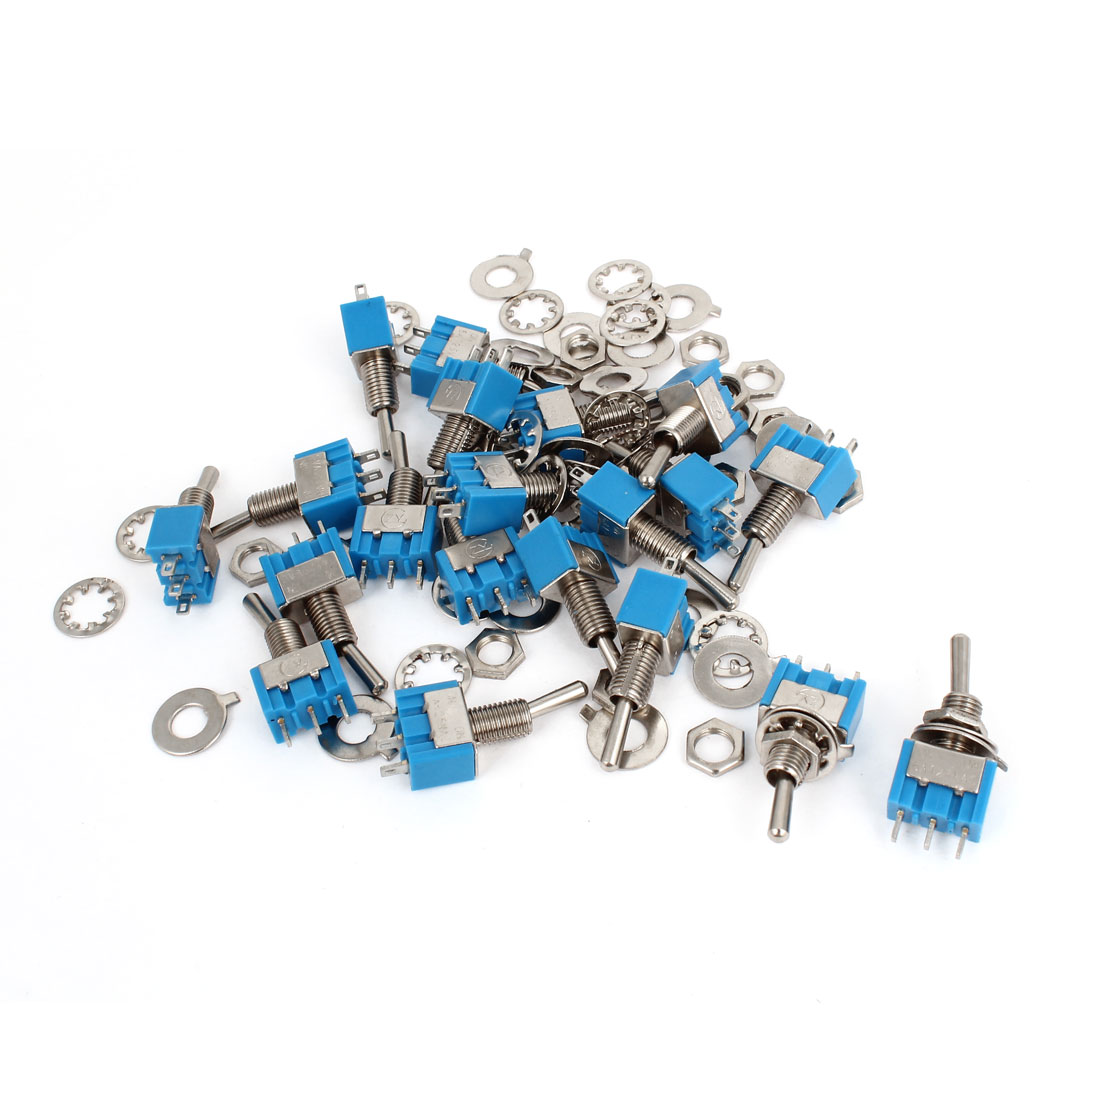 20Pcs AC 125V 6A 3 Pin ON/ON 2 Position SPDT Miniature Toggle Switch Blue